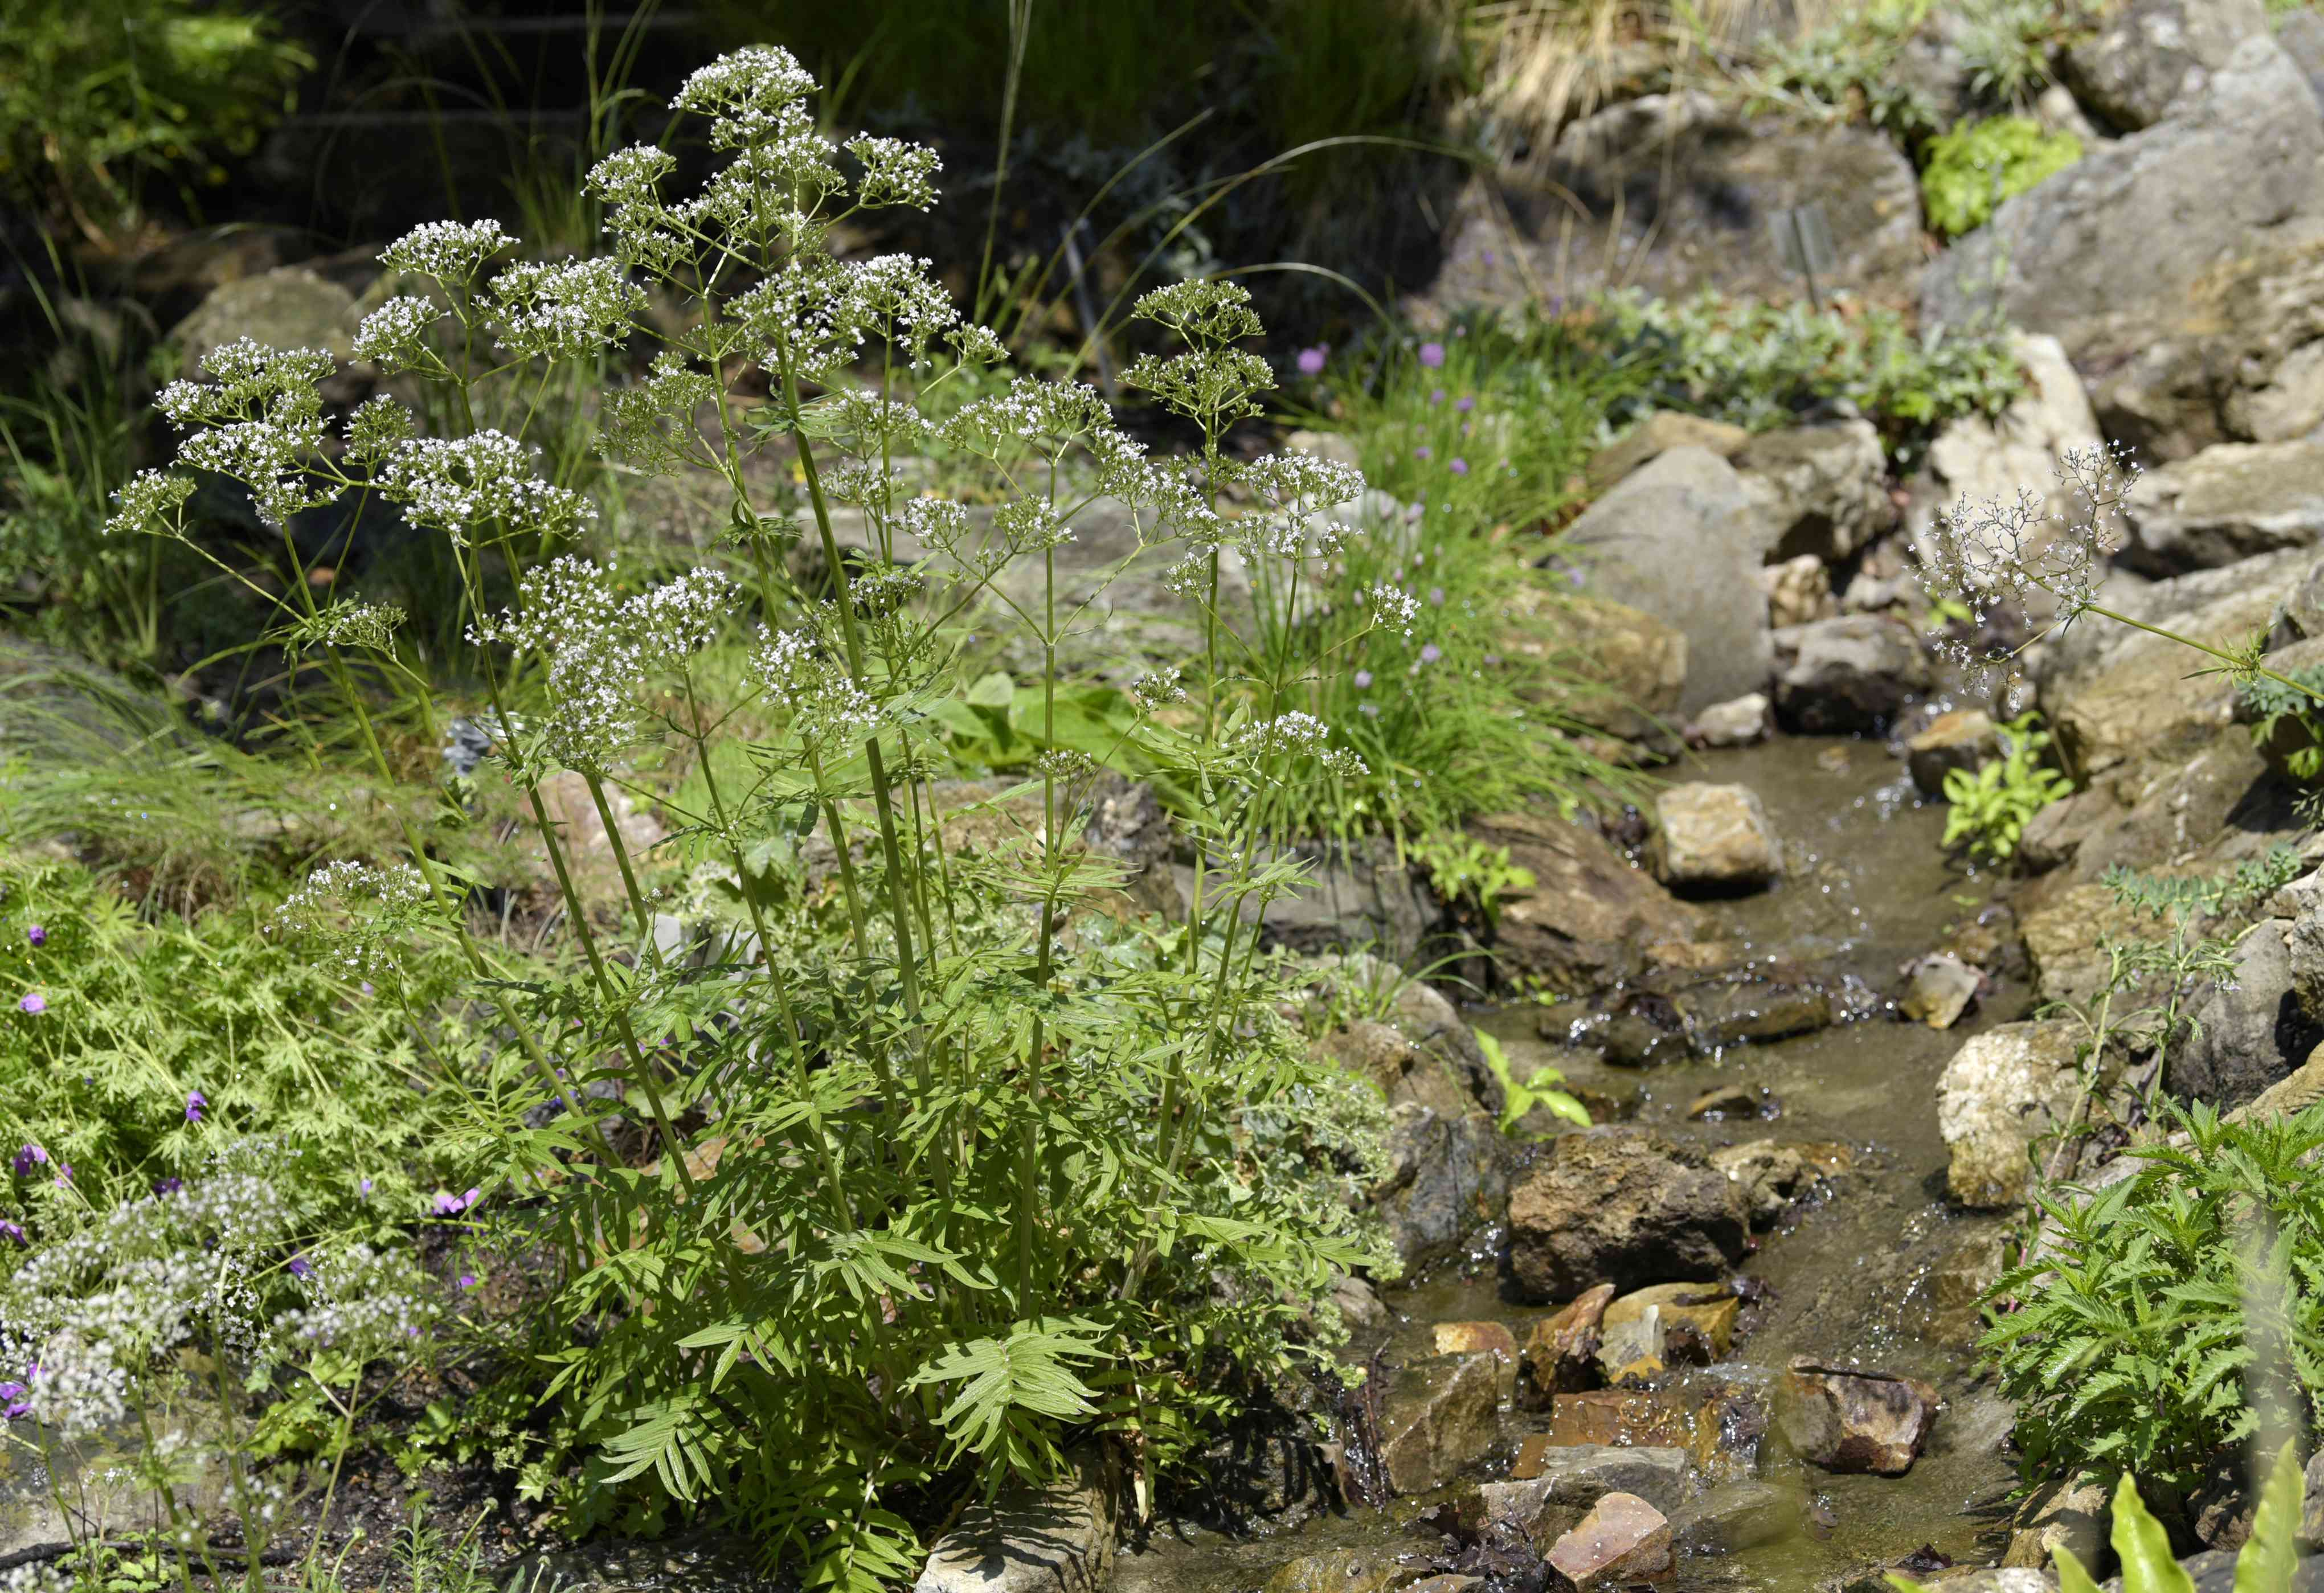 Valerian plant with small white flower clusters on thin stalks next to stream